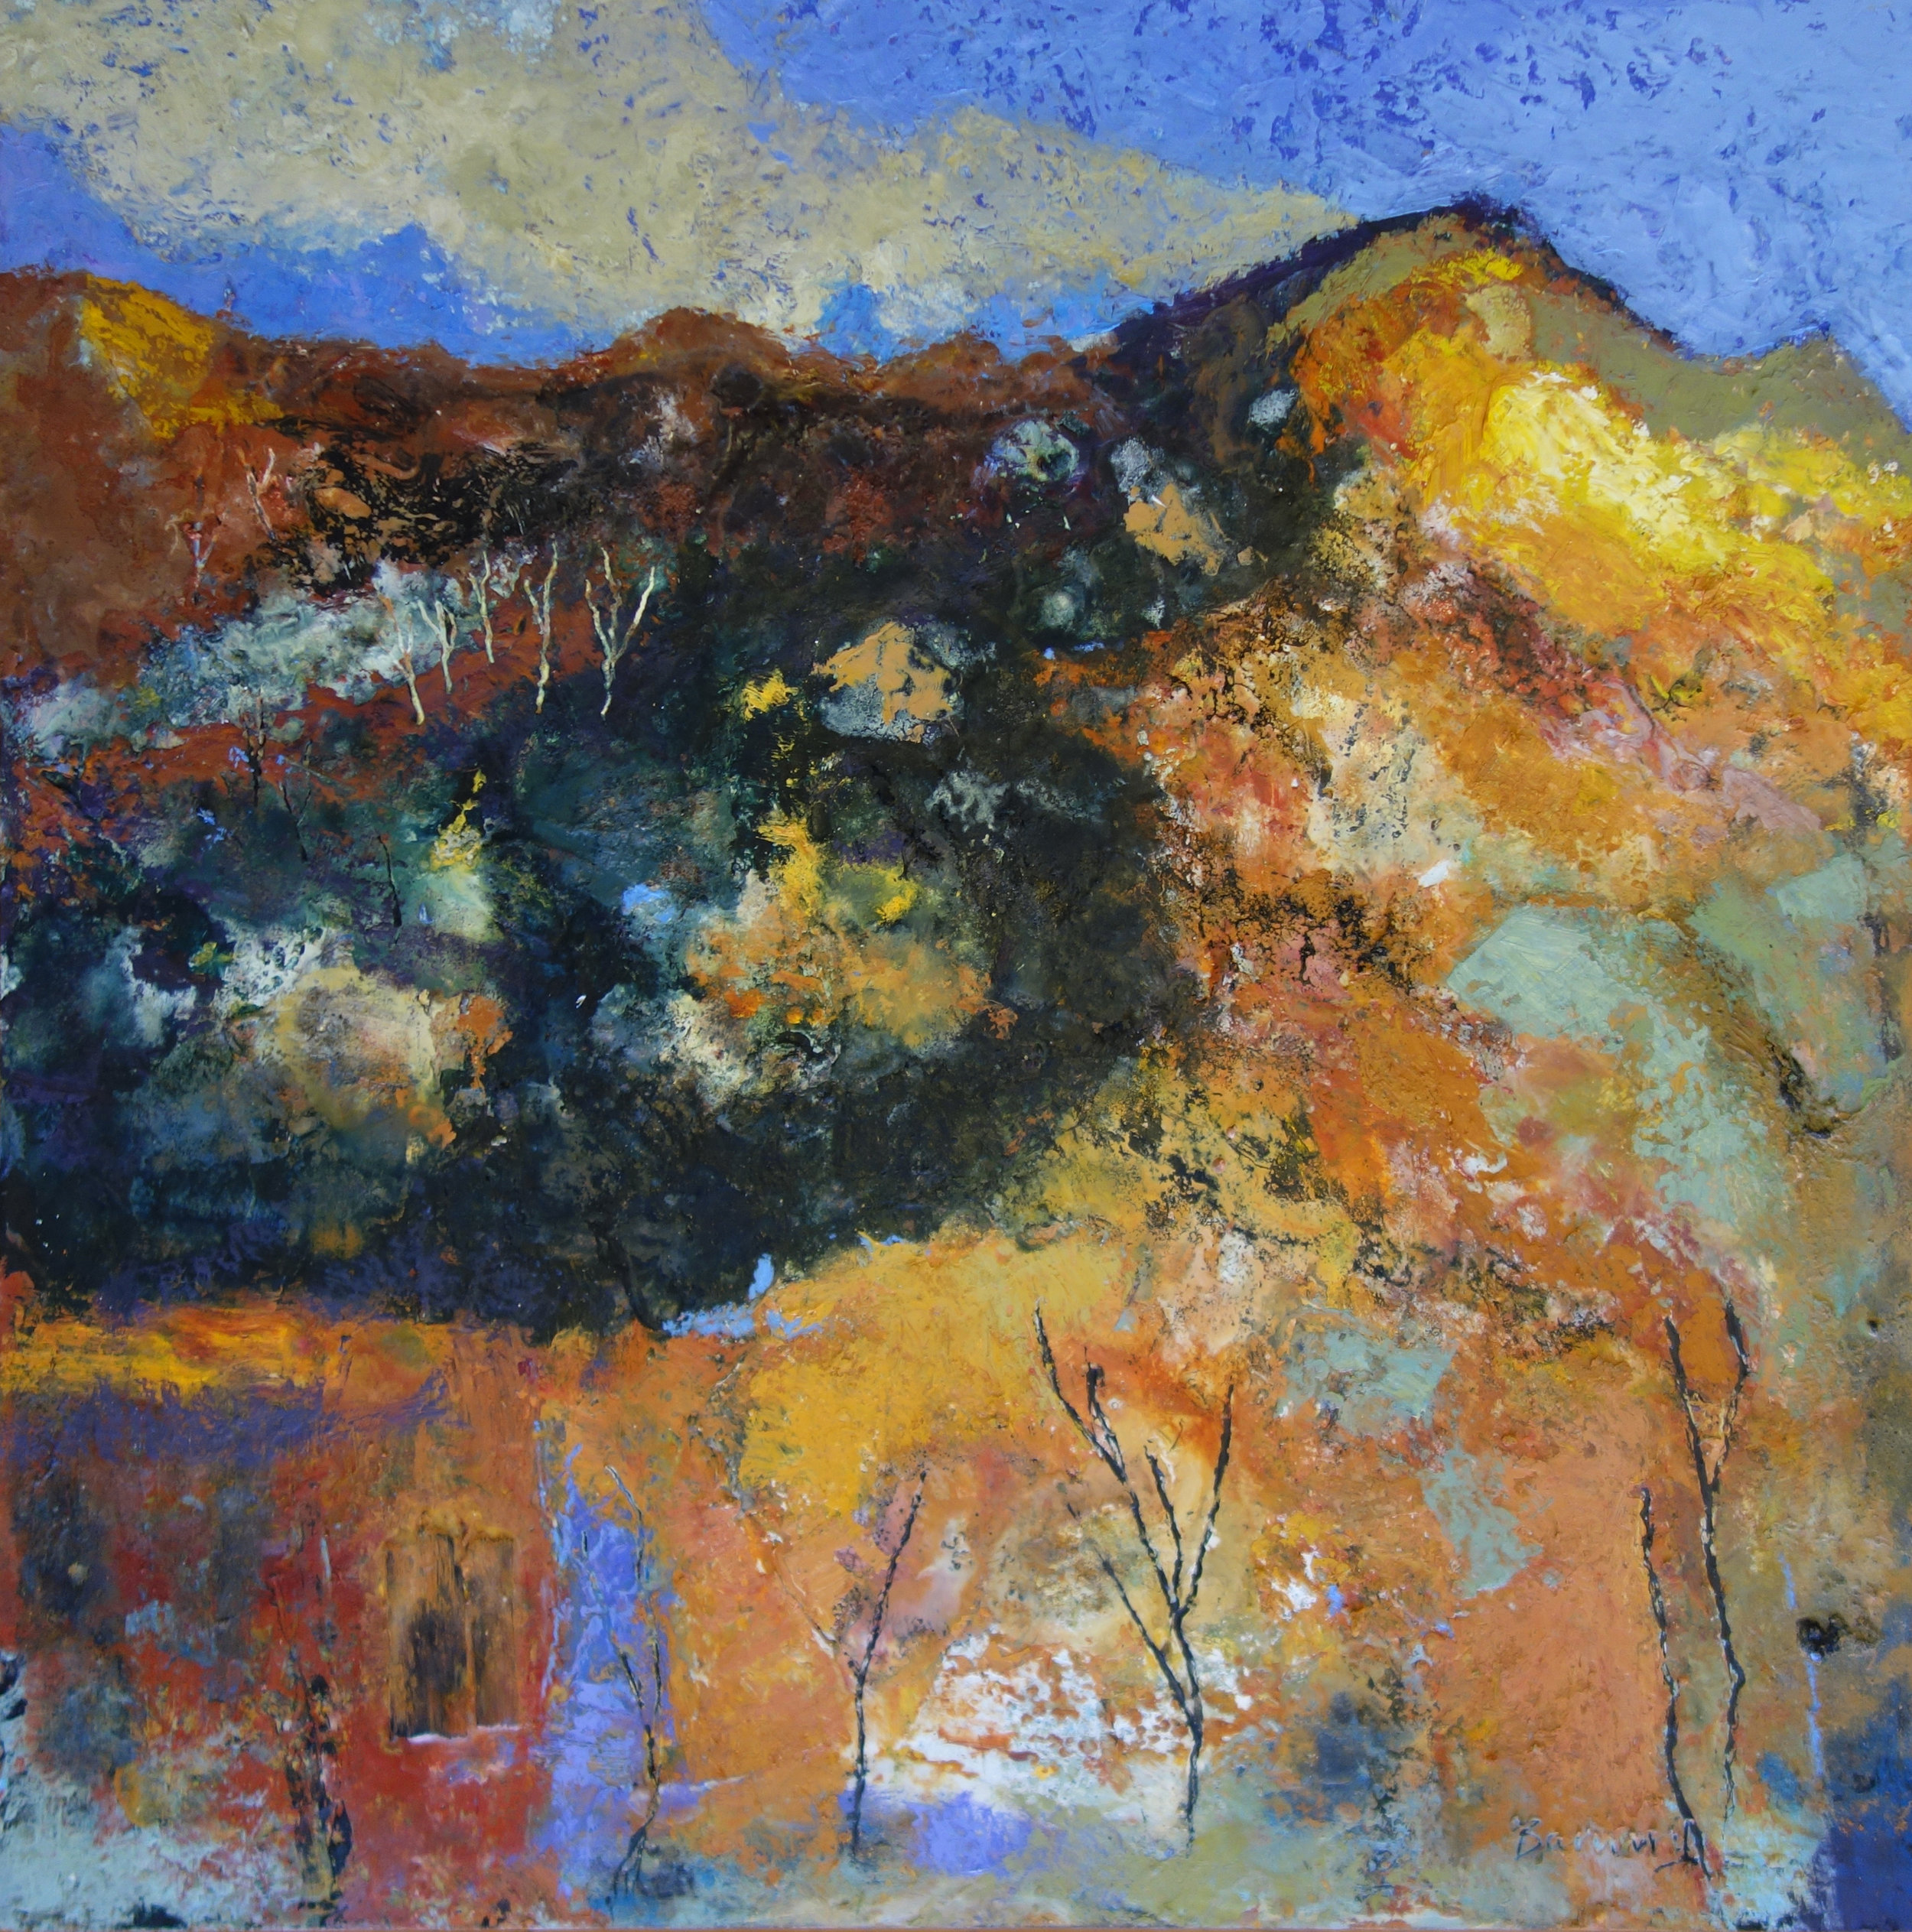 Chapmans Peak  oil based mixed media  75cm x 75xm  £1400